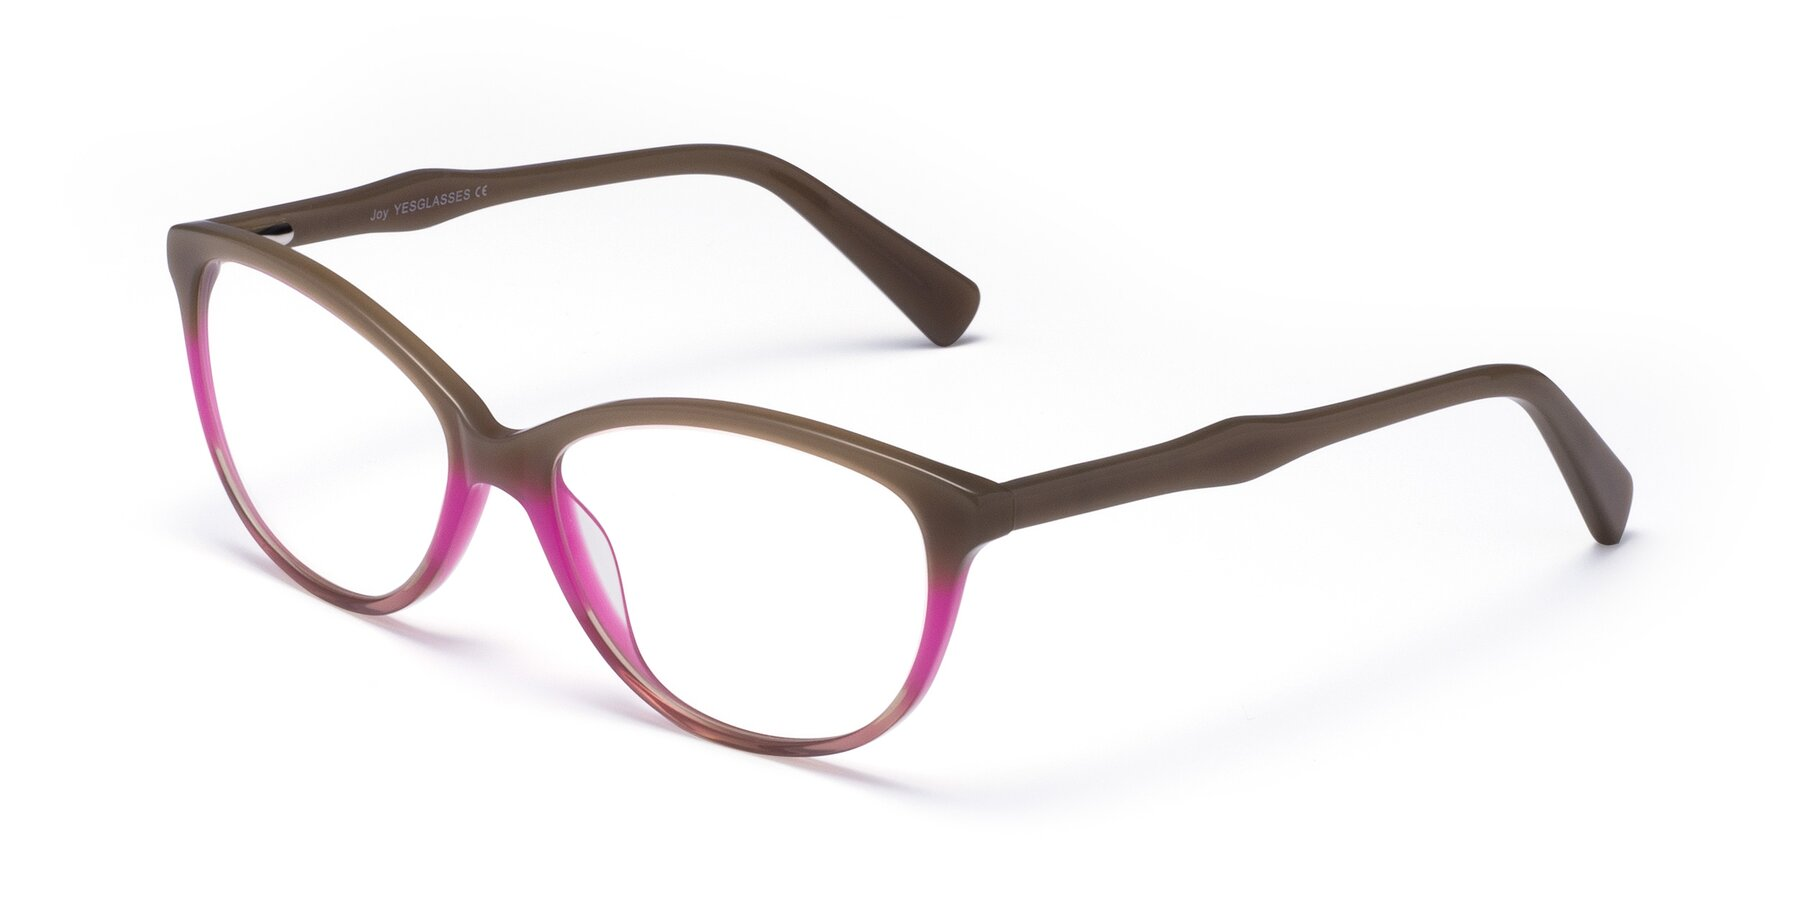 Angle of Joy in Floral Tan-Pink with Clear Eyeglass Lenses